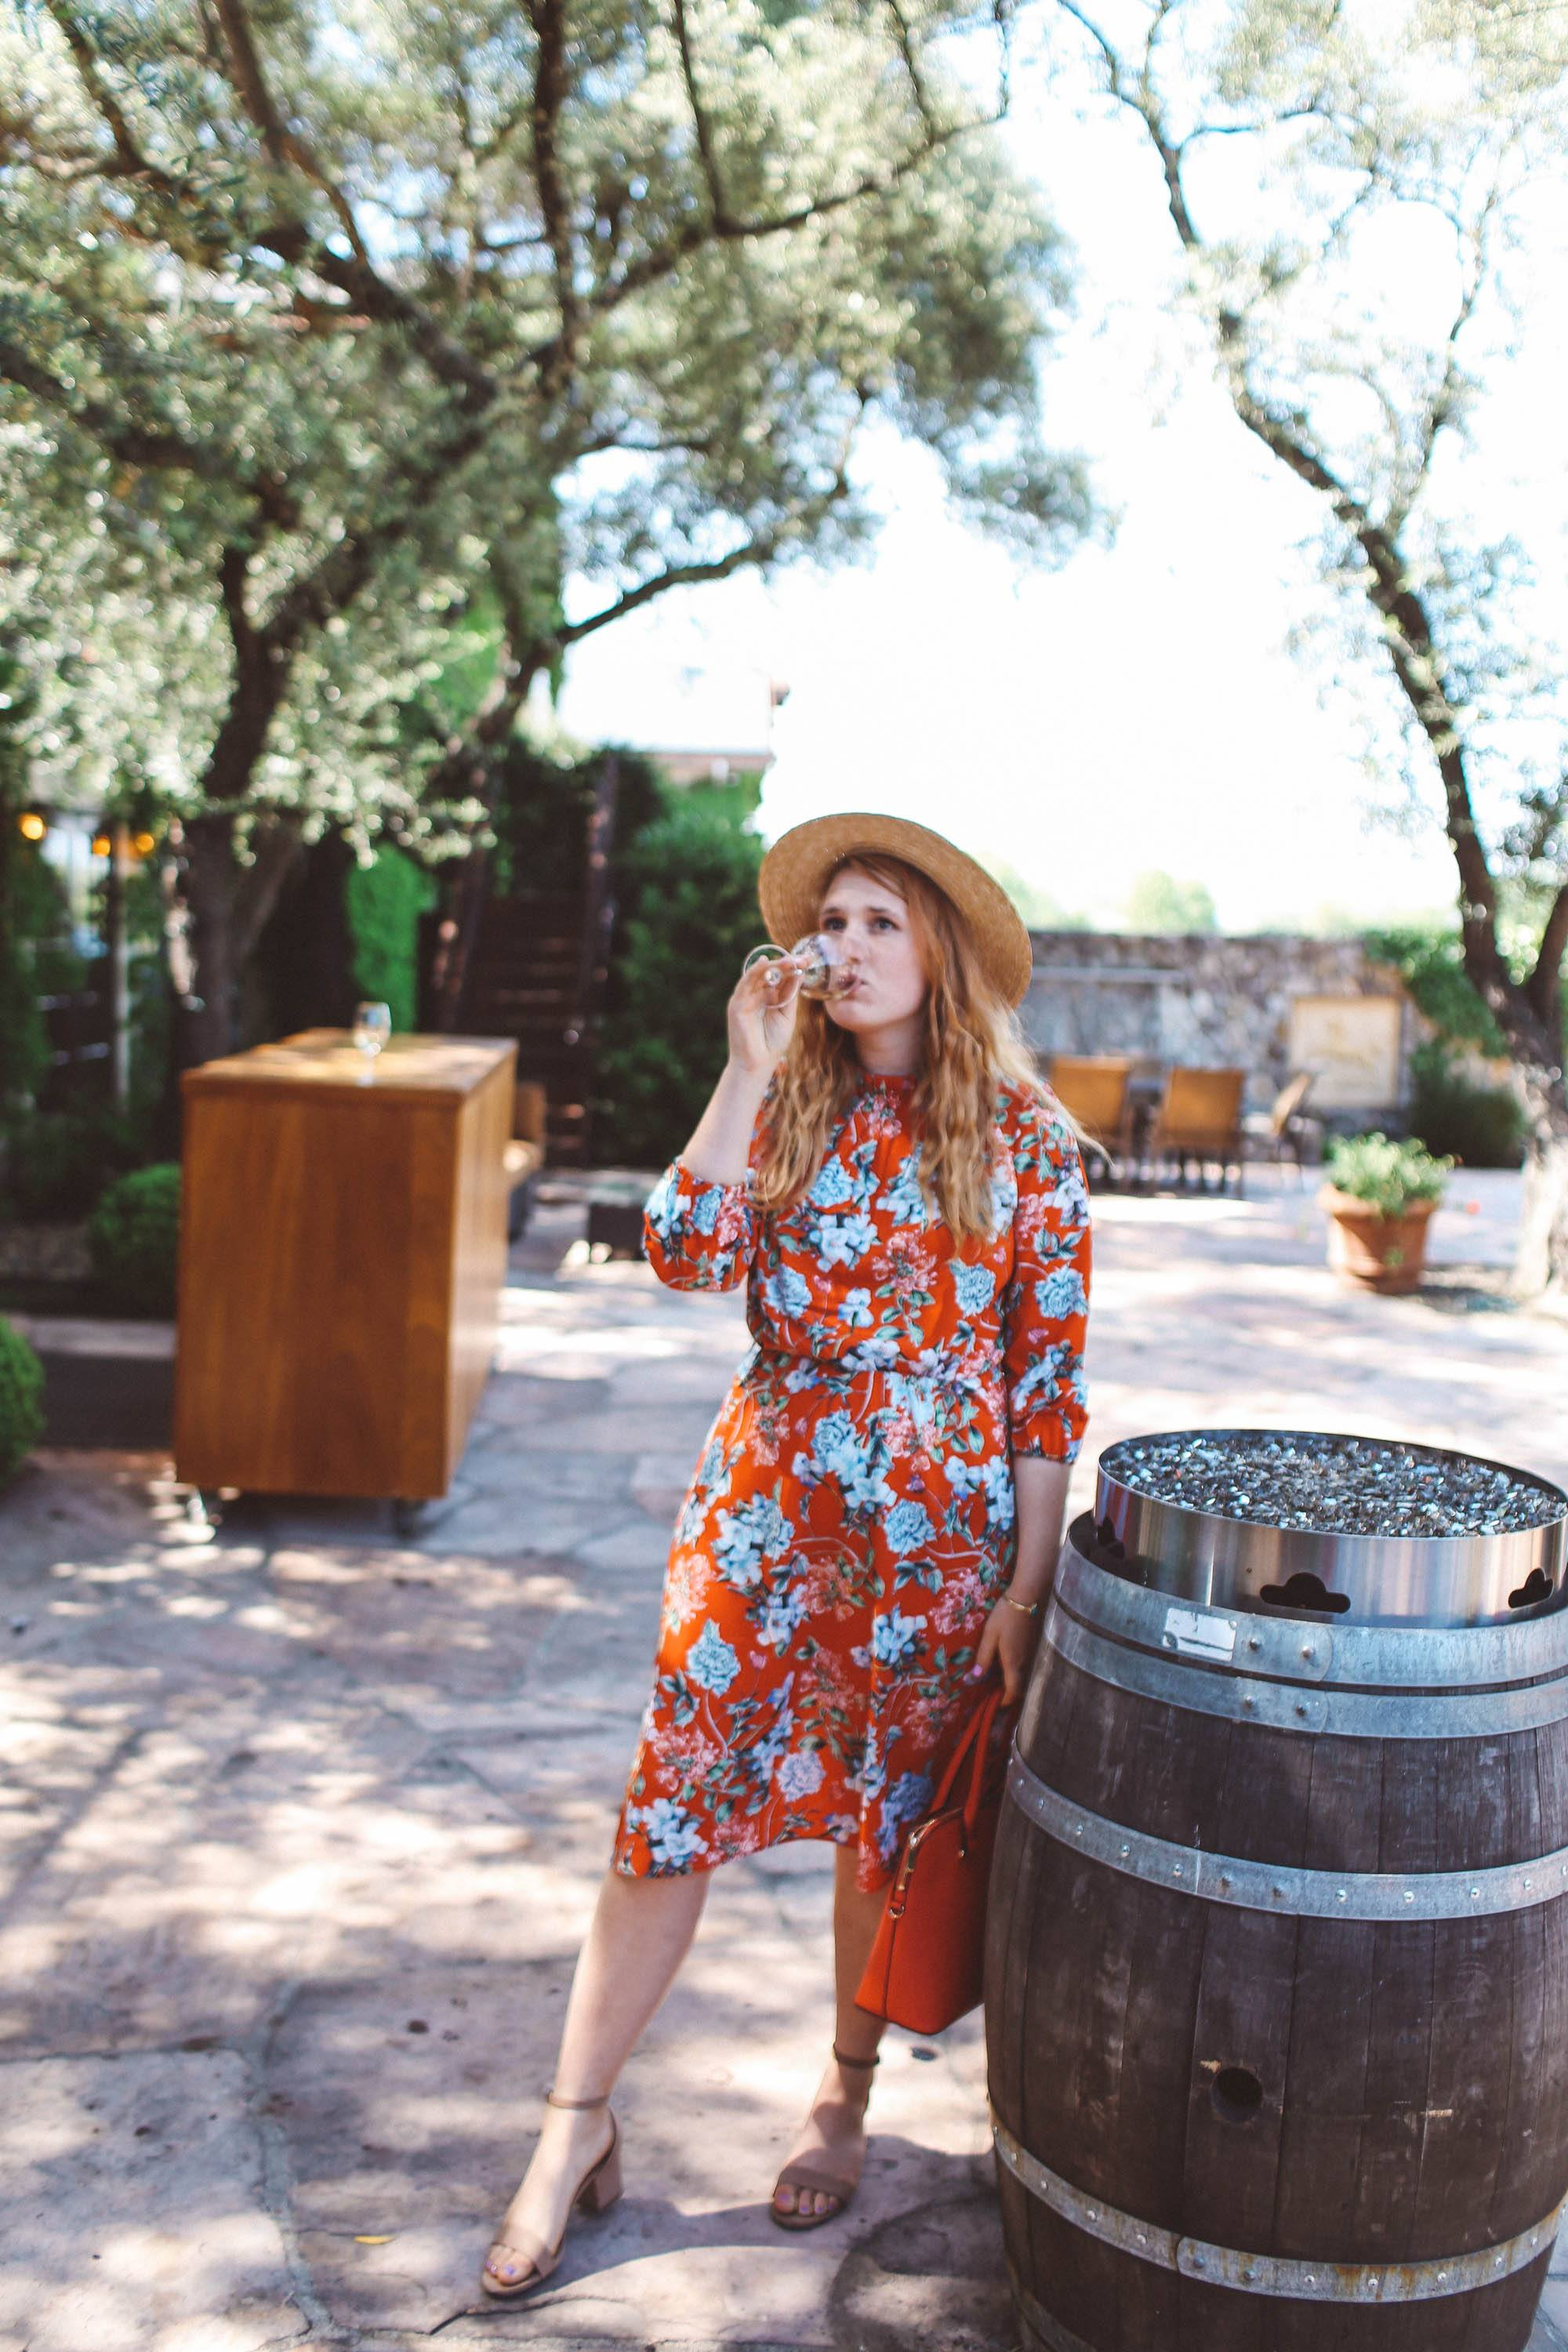 Woman in red floral dress and straw hat drinking wine next to a barrel at Grgich Hills Estate